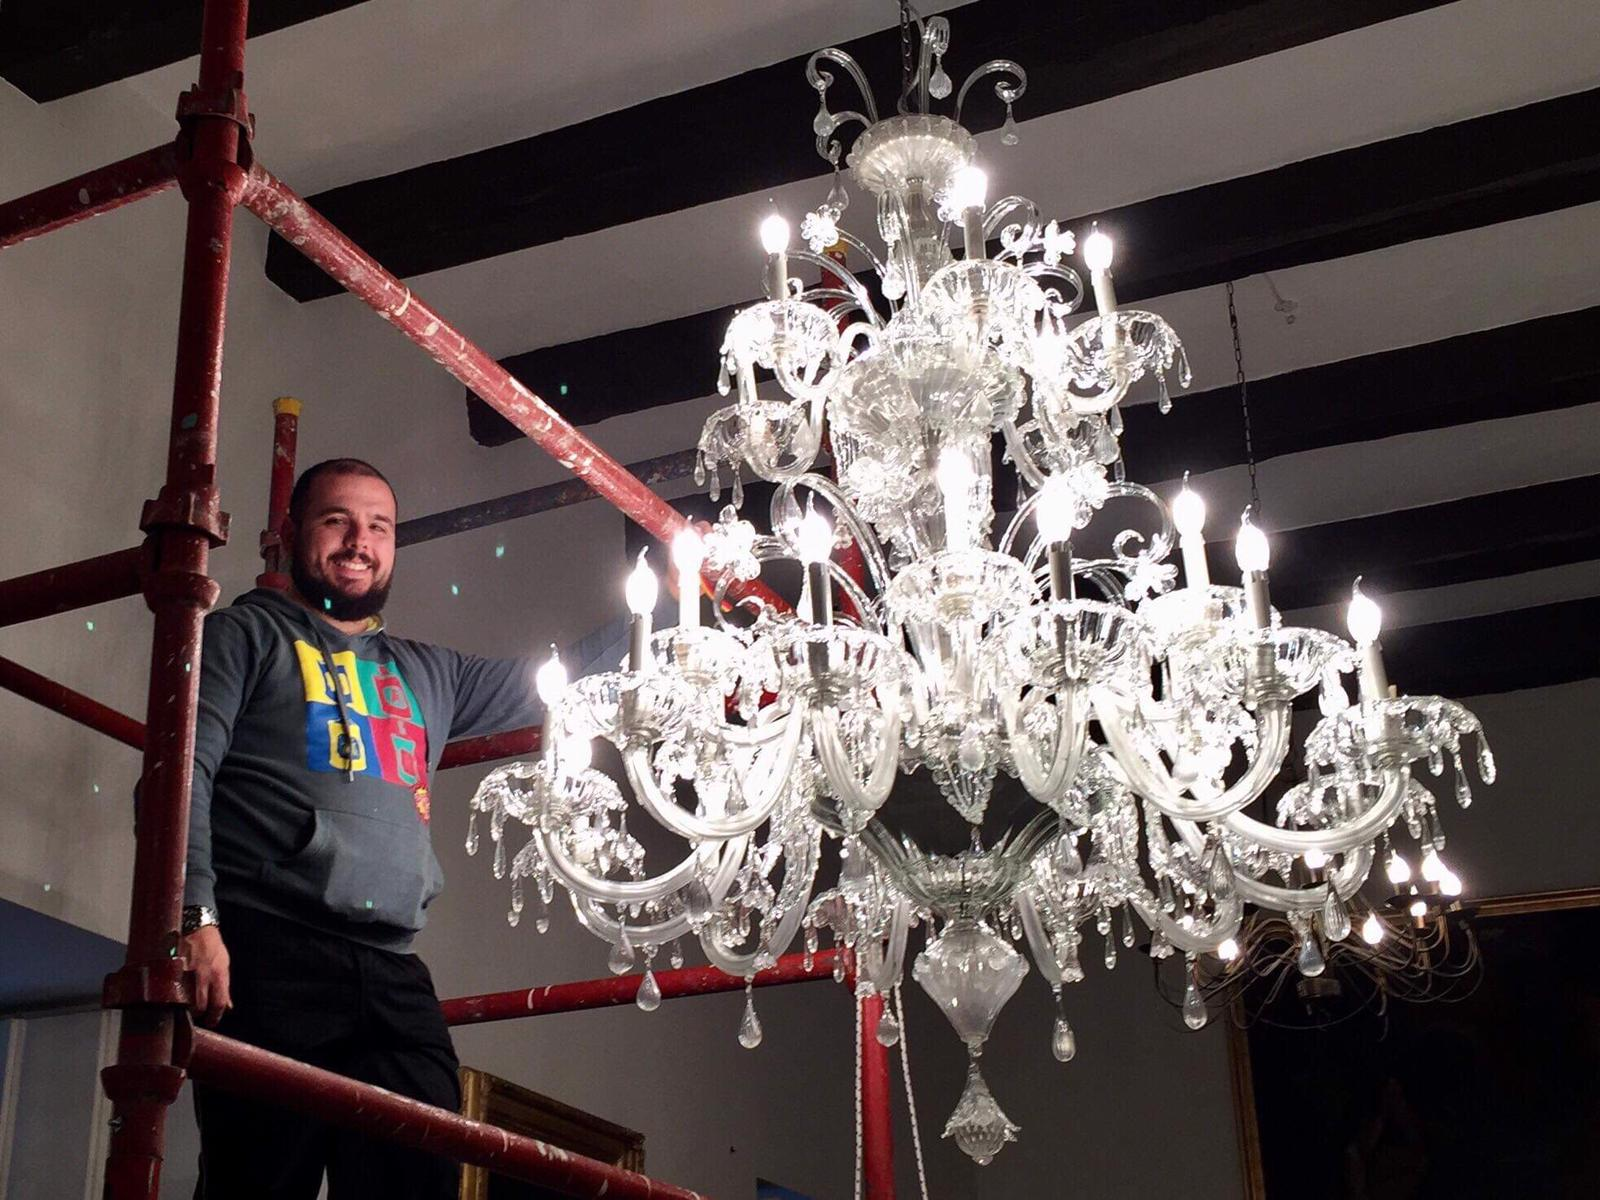 Admiring the beauty of this Murano chandelier